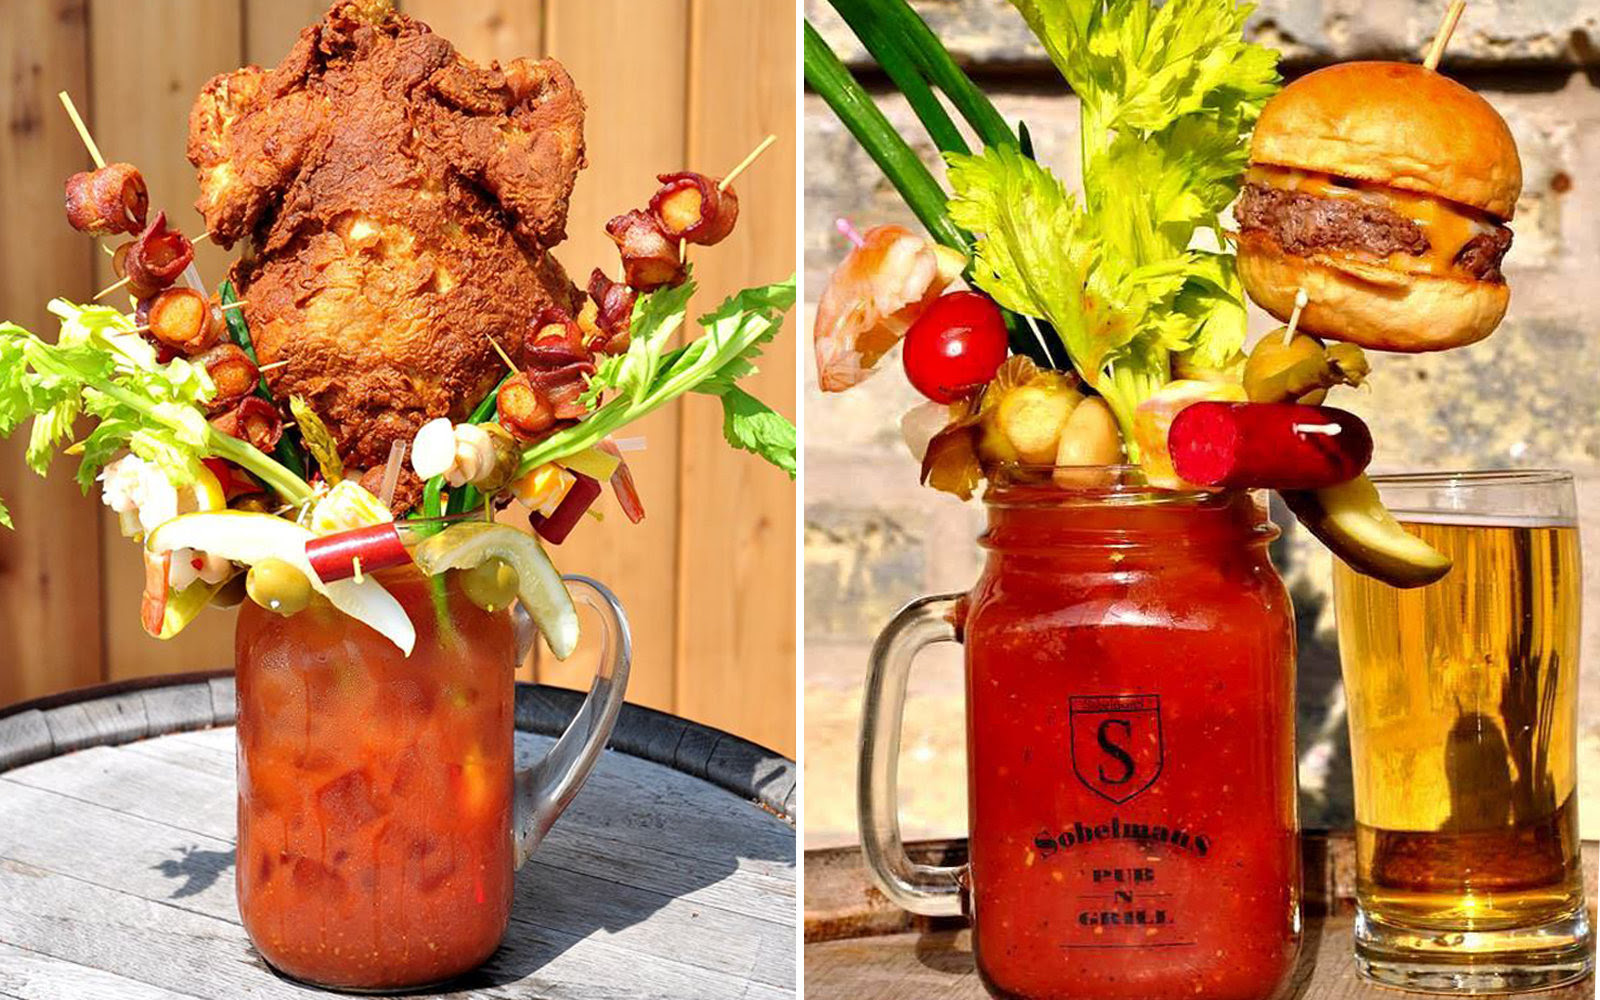 Image result for sobelman's bloody mary menu